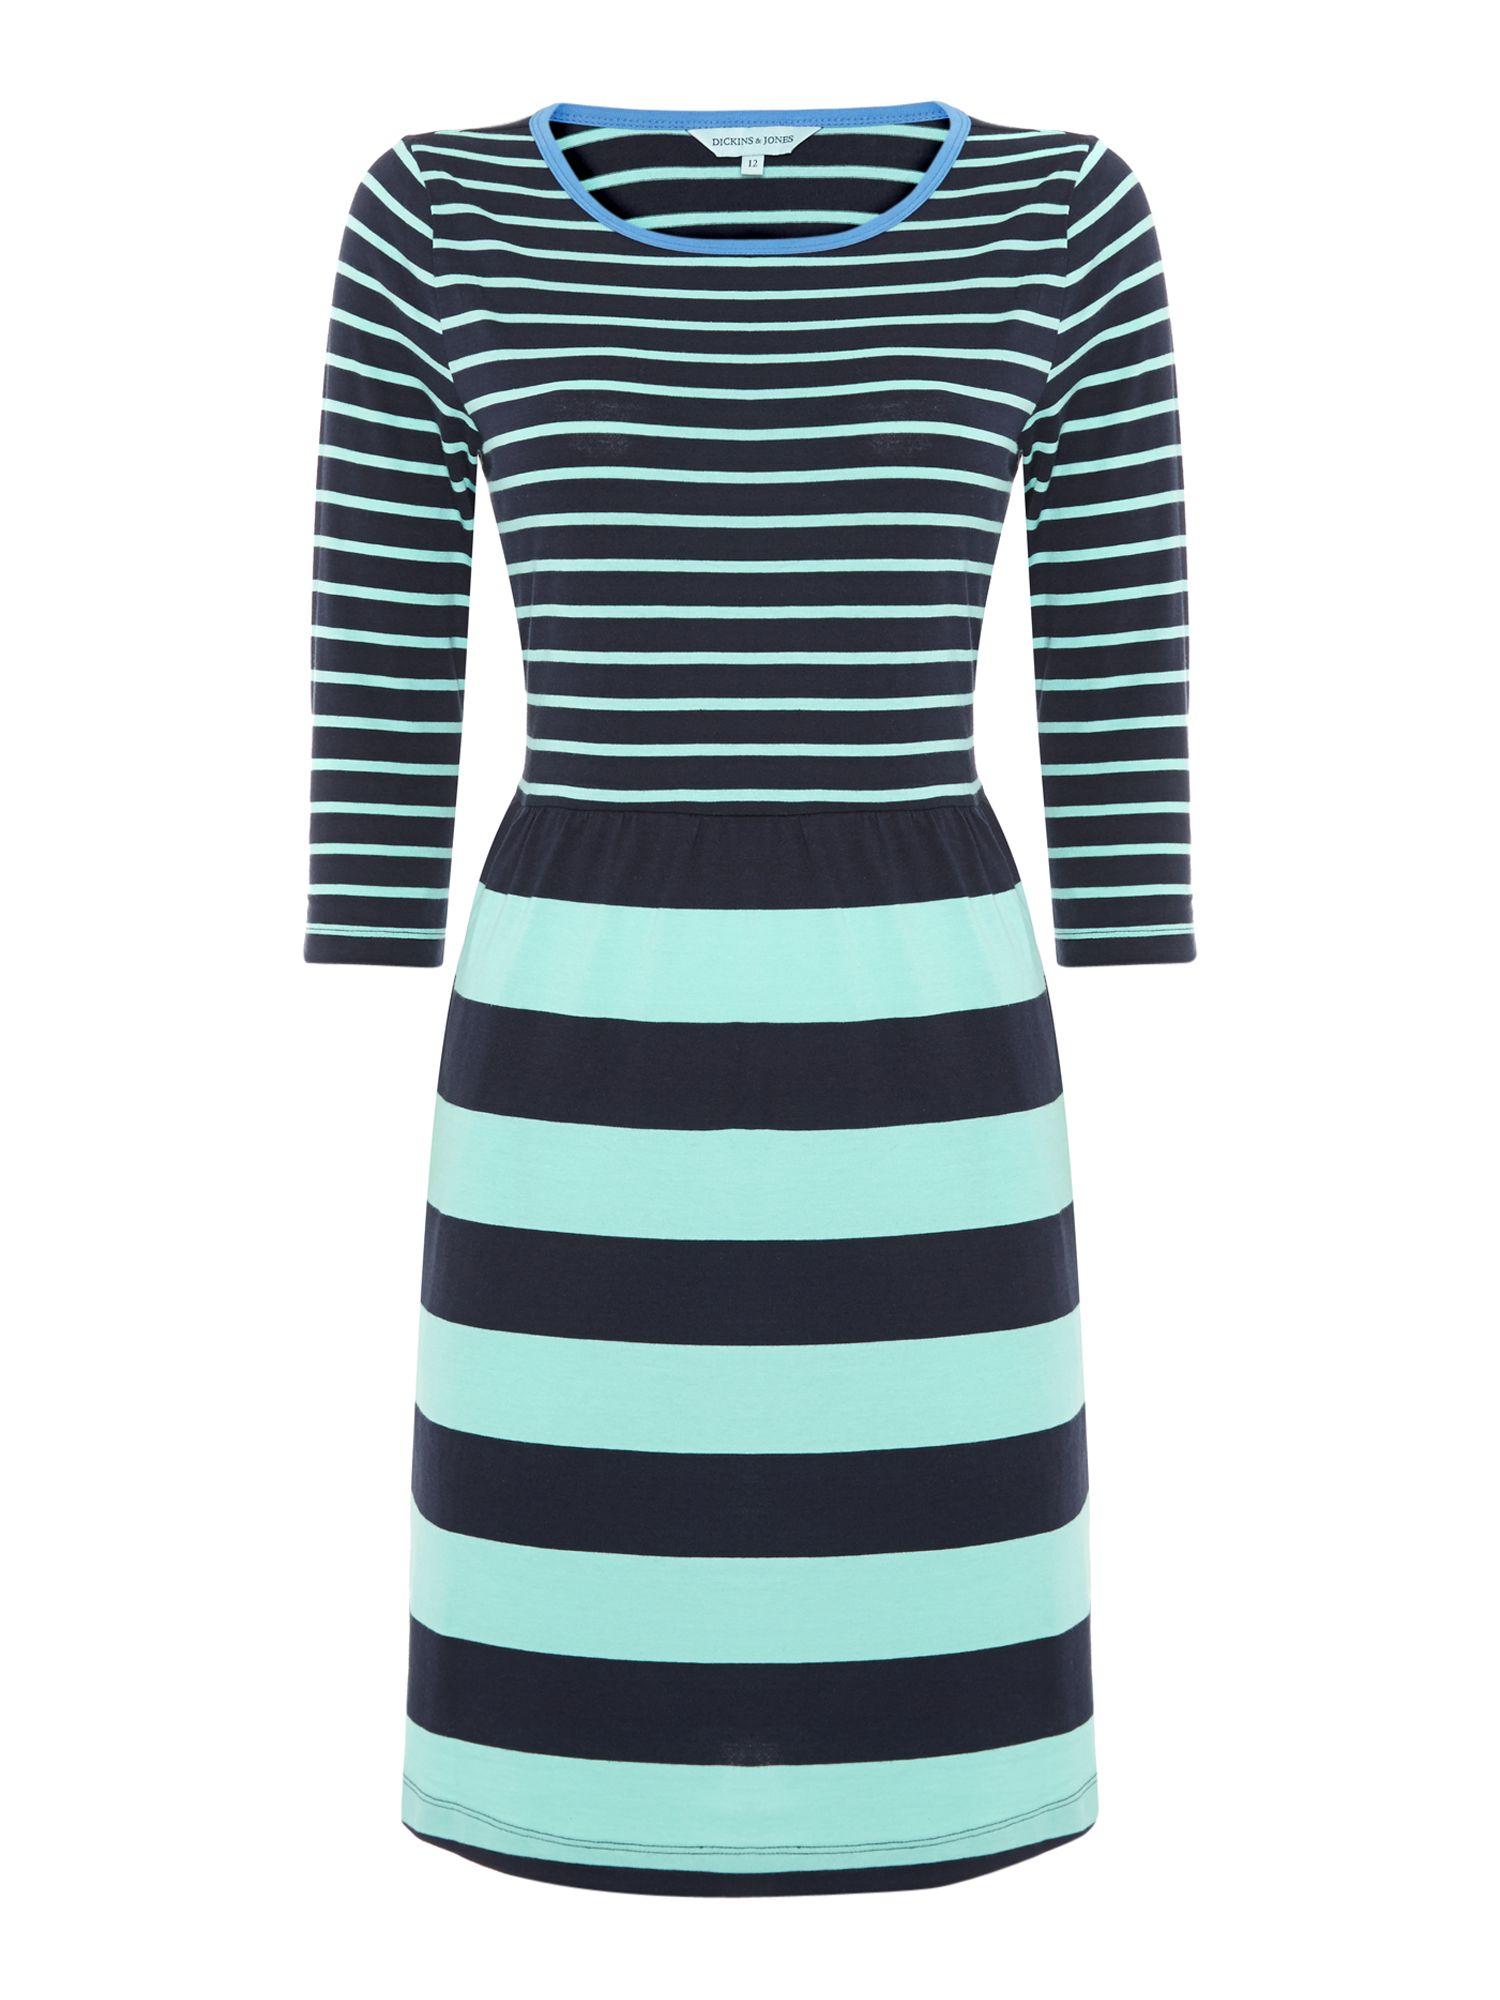 Stripe dress with 3/4 sleeves